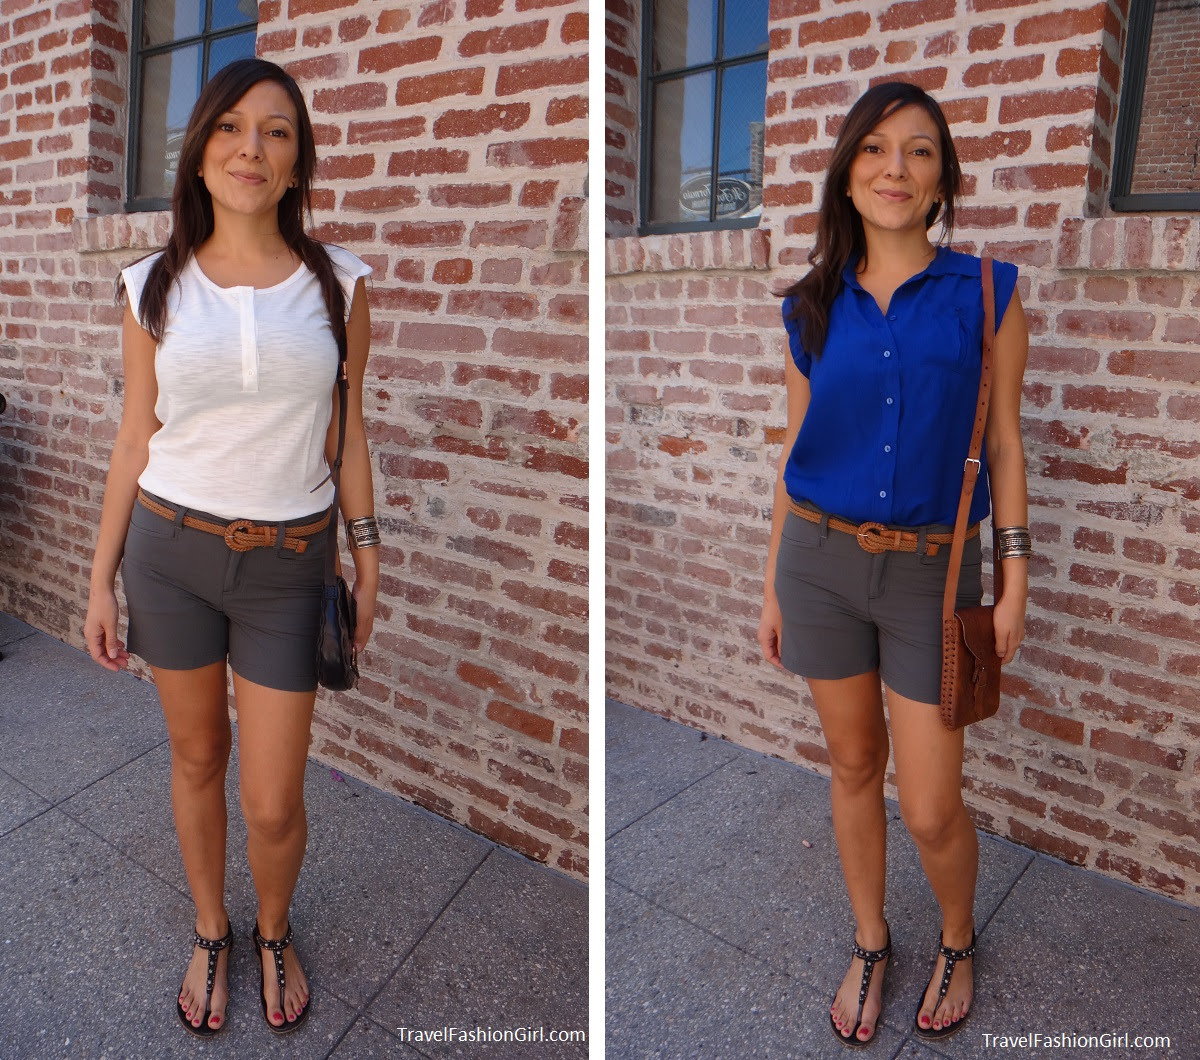 Backpacking Clothes: Patagonia Women's Travel Clothing Review